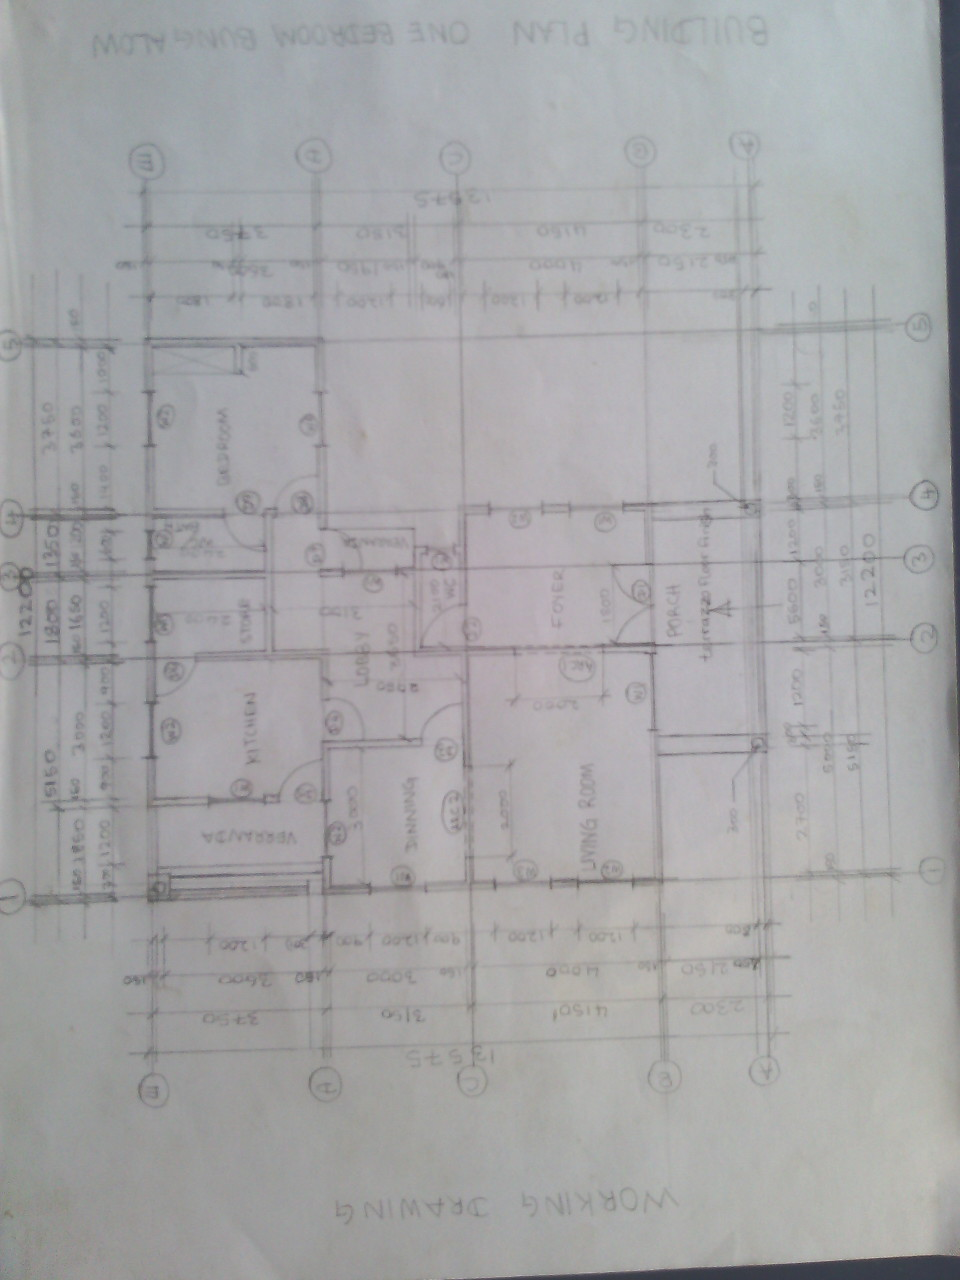 Re new dimension to nigerian architecture construction of 4 bedroom twin duplex by genbuharim 308pm on nov 20 2013